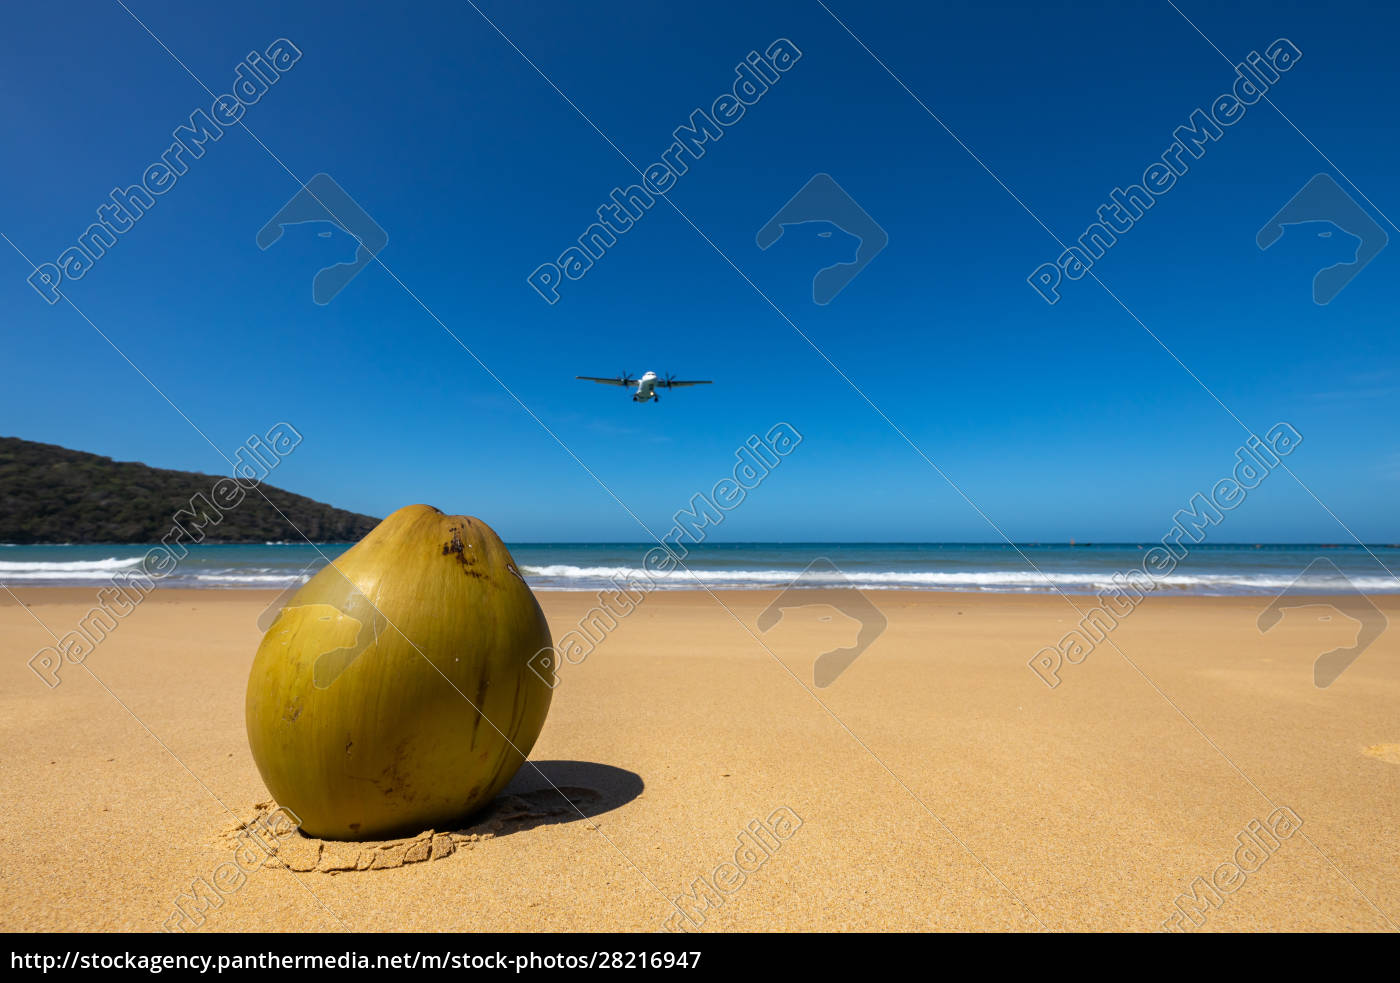 airplane, is, landing, on, con, dao - 28216947